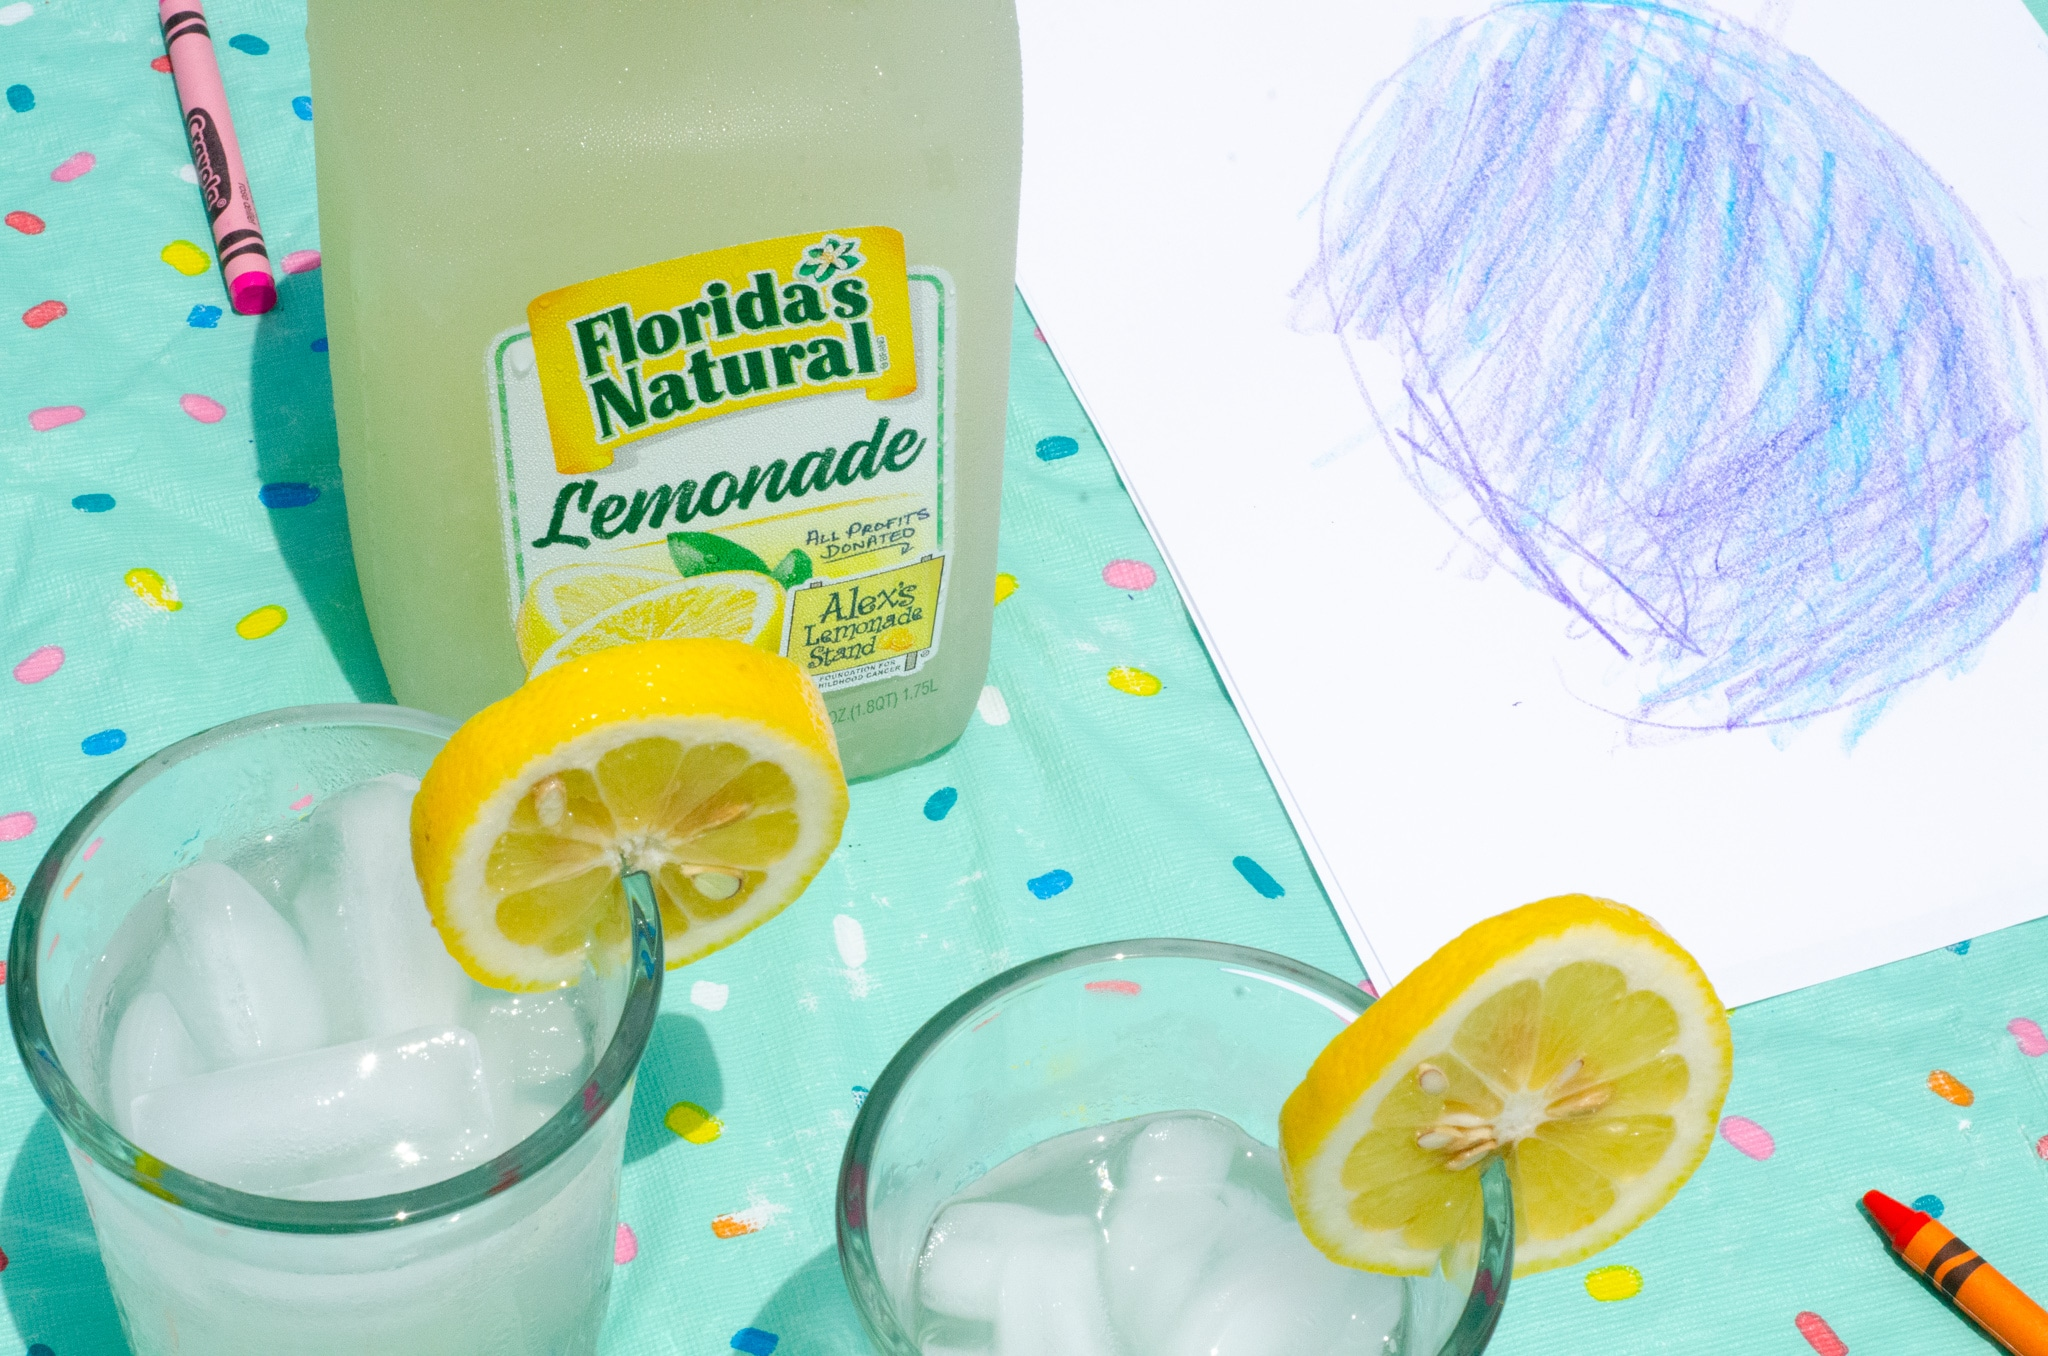 Lemonade Inspired Art Overlook. Looking for a fun way to keep the kids entertained this summer? Celebrate the start of summer with Lemonade-Inspired Art In the Backyard.